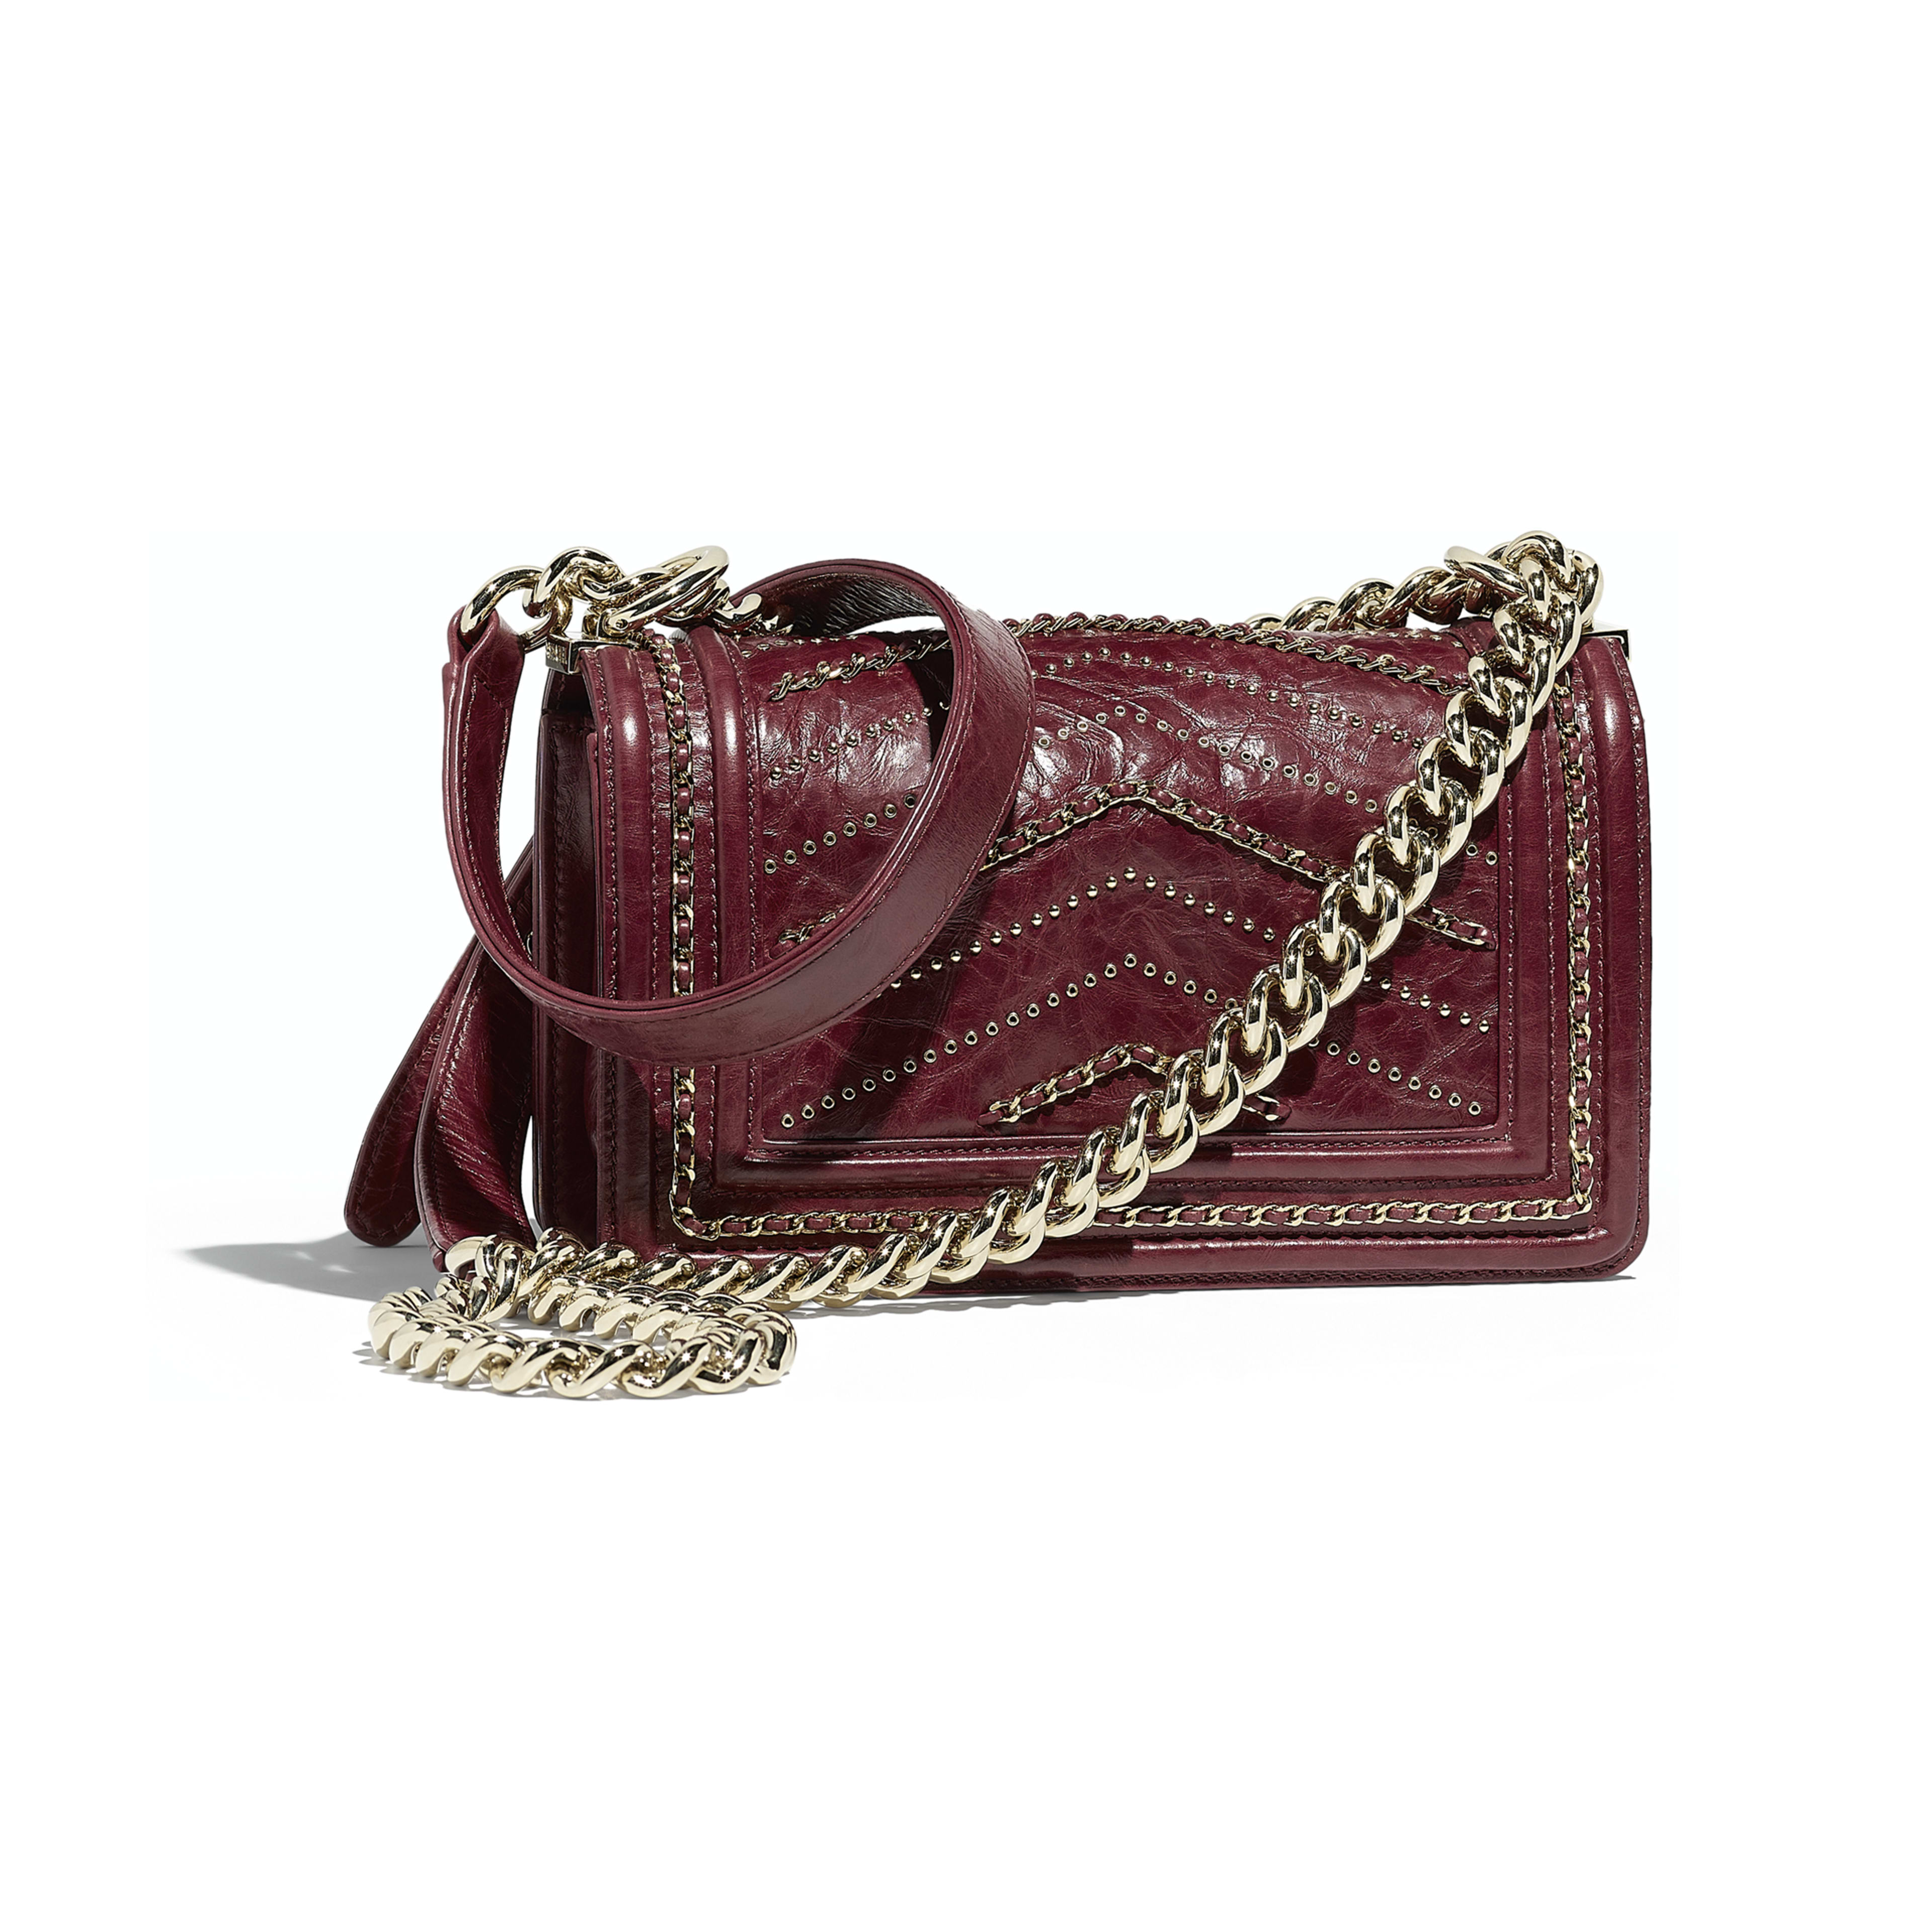 Small BOY CHANEL Handbag - Red - Crumpled Calfskin & Gold-Tone Metal - Alternative view - see full sized version